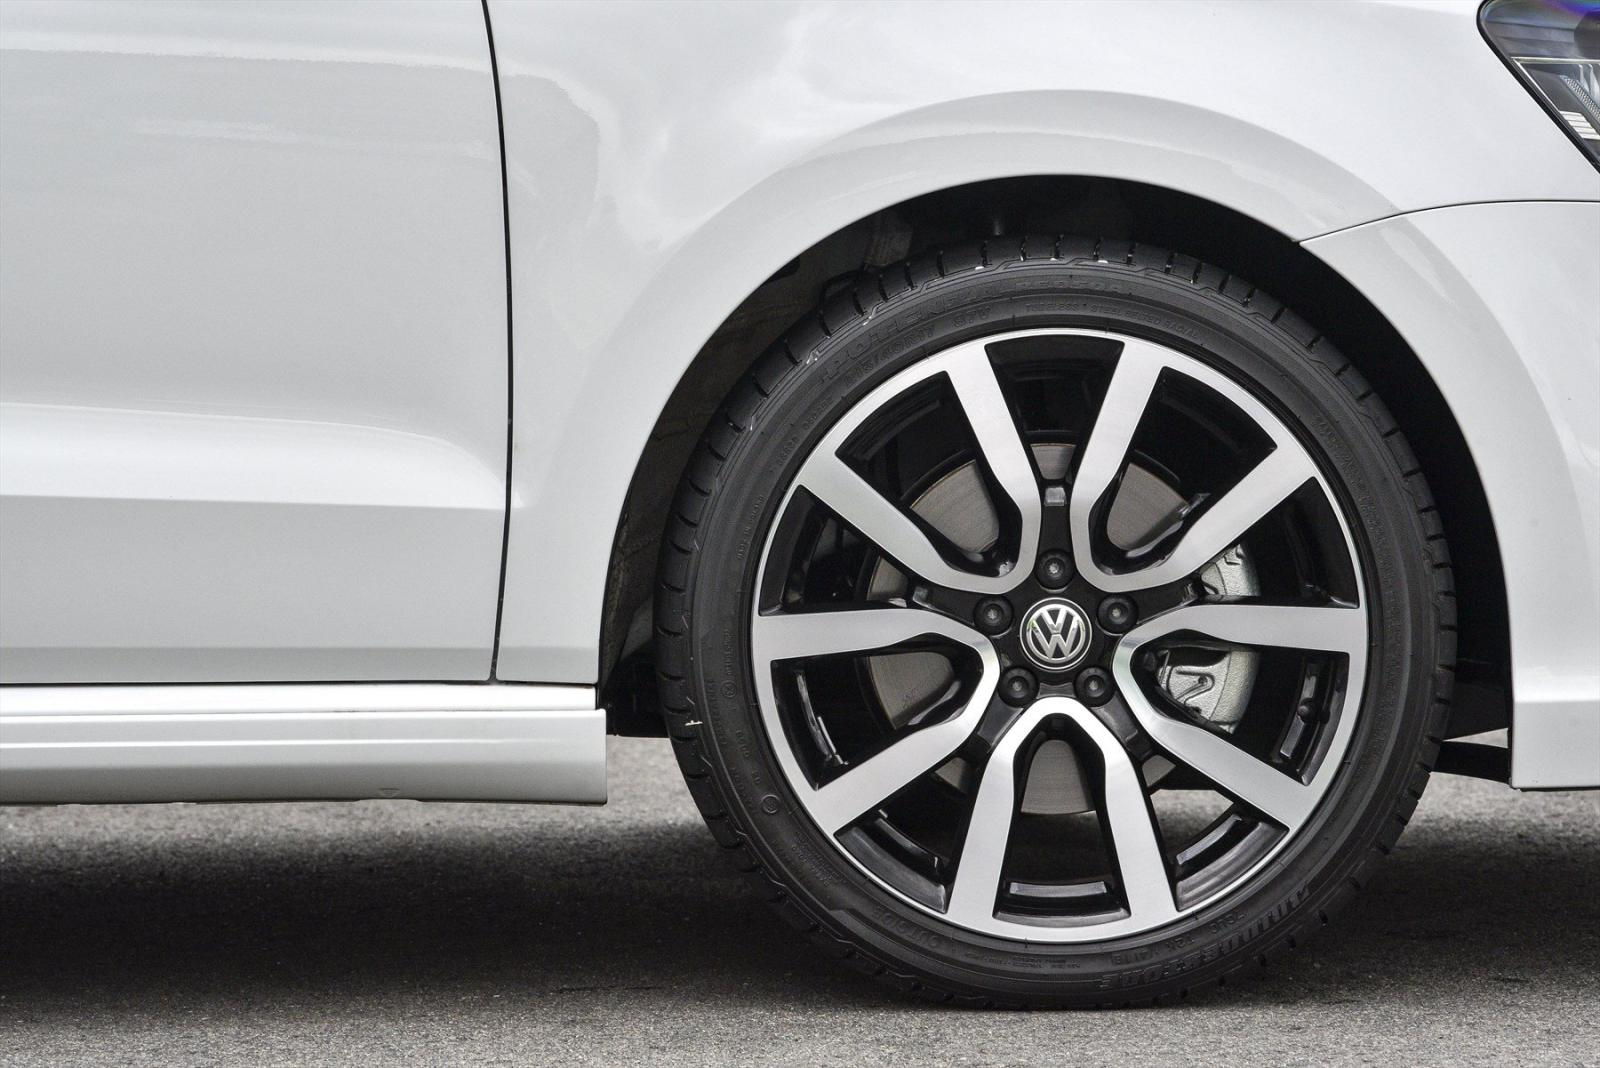 Volkswagen Polo R-Line alloy wheel